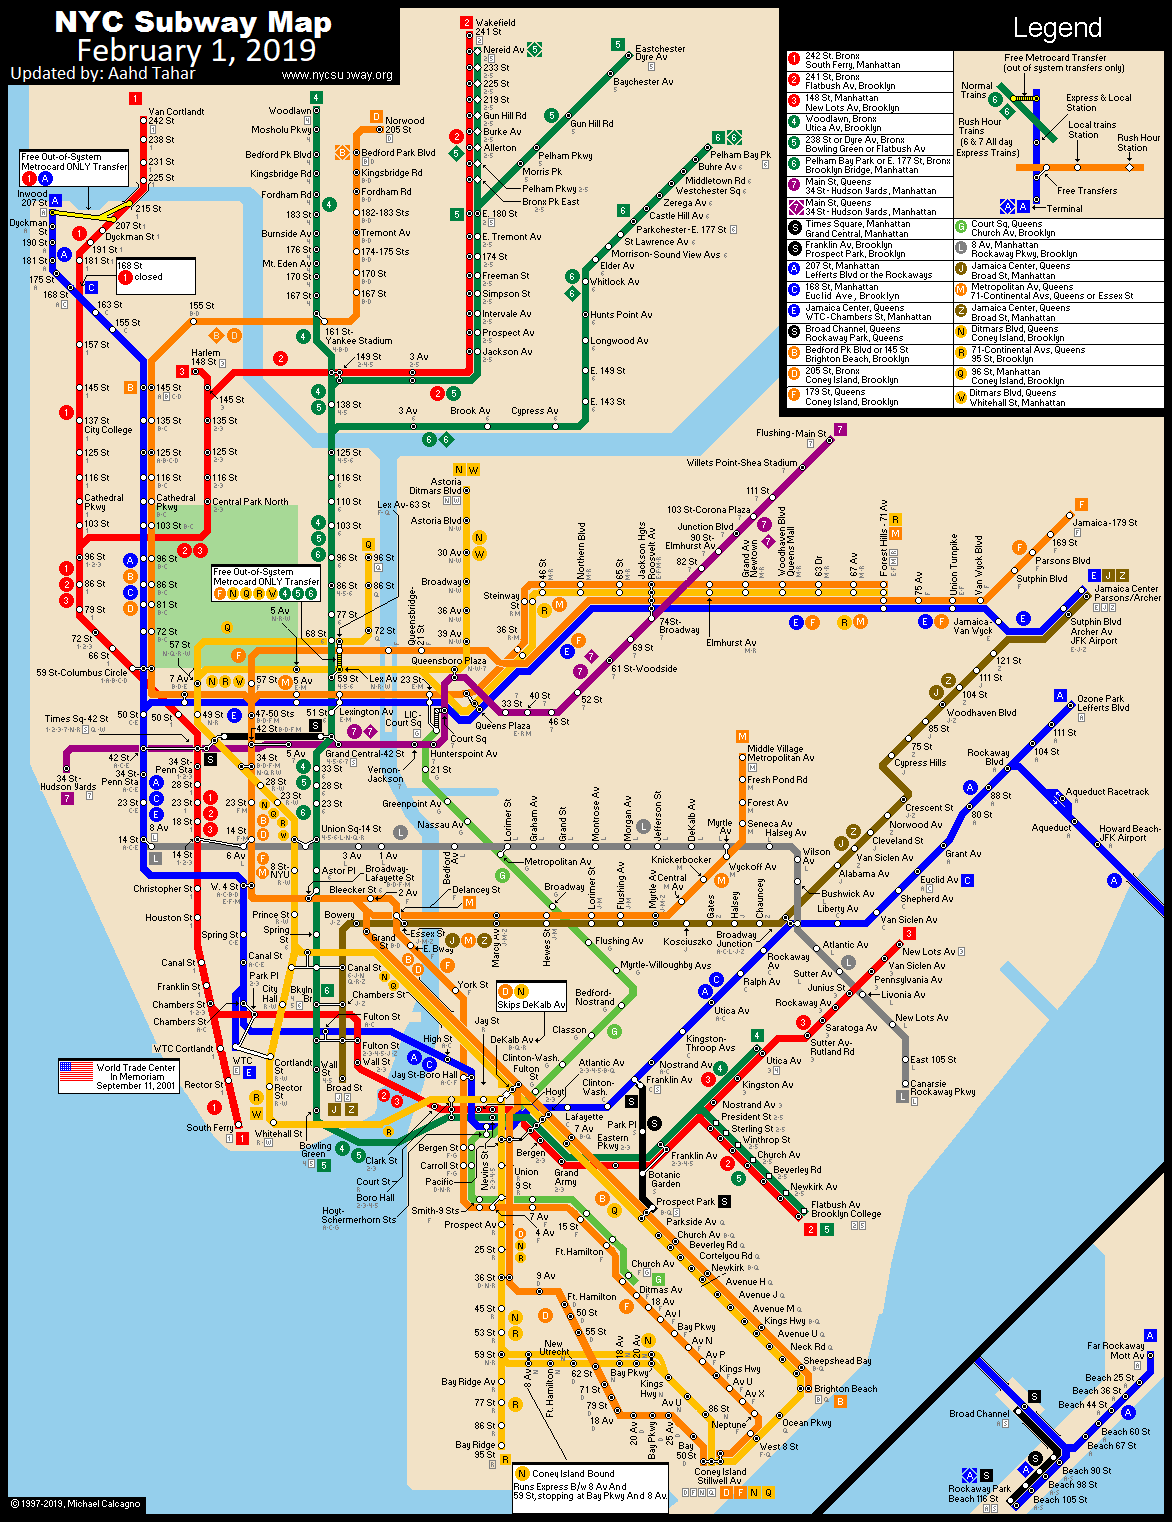 New York Subway Map To Print.Www Nycsubway Org New York City Subway Route Map By Michael